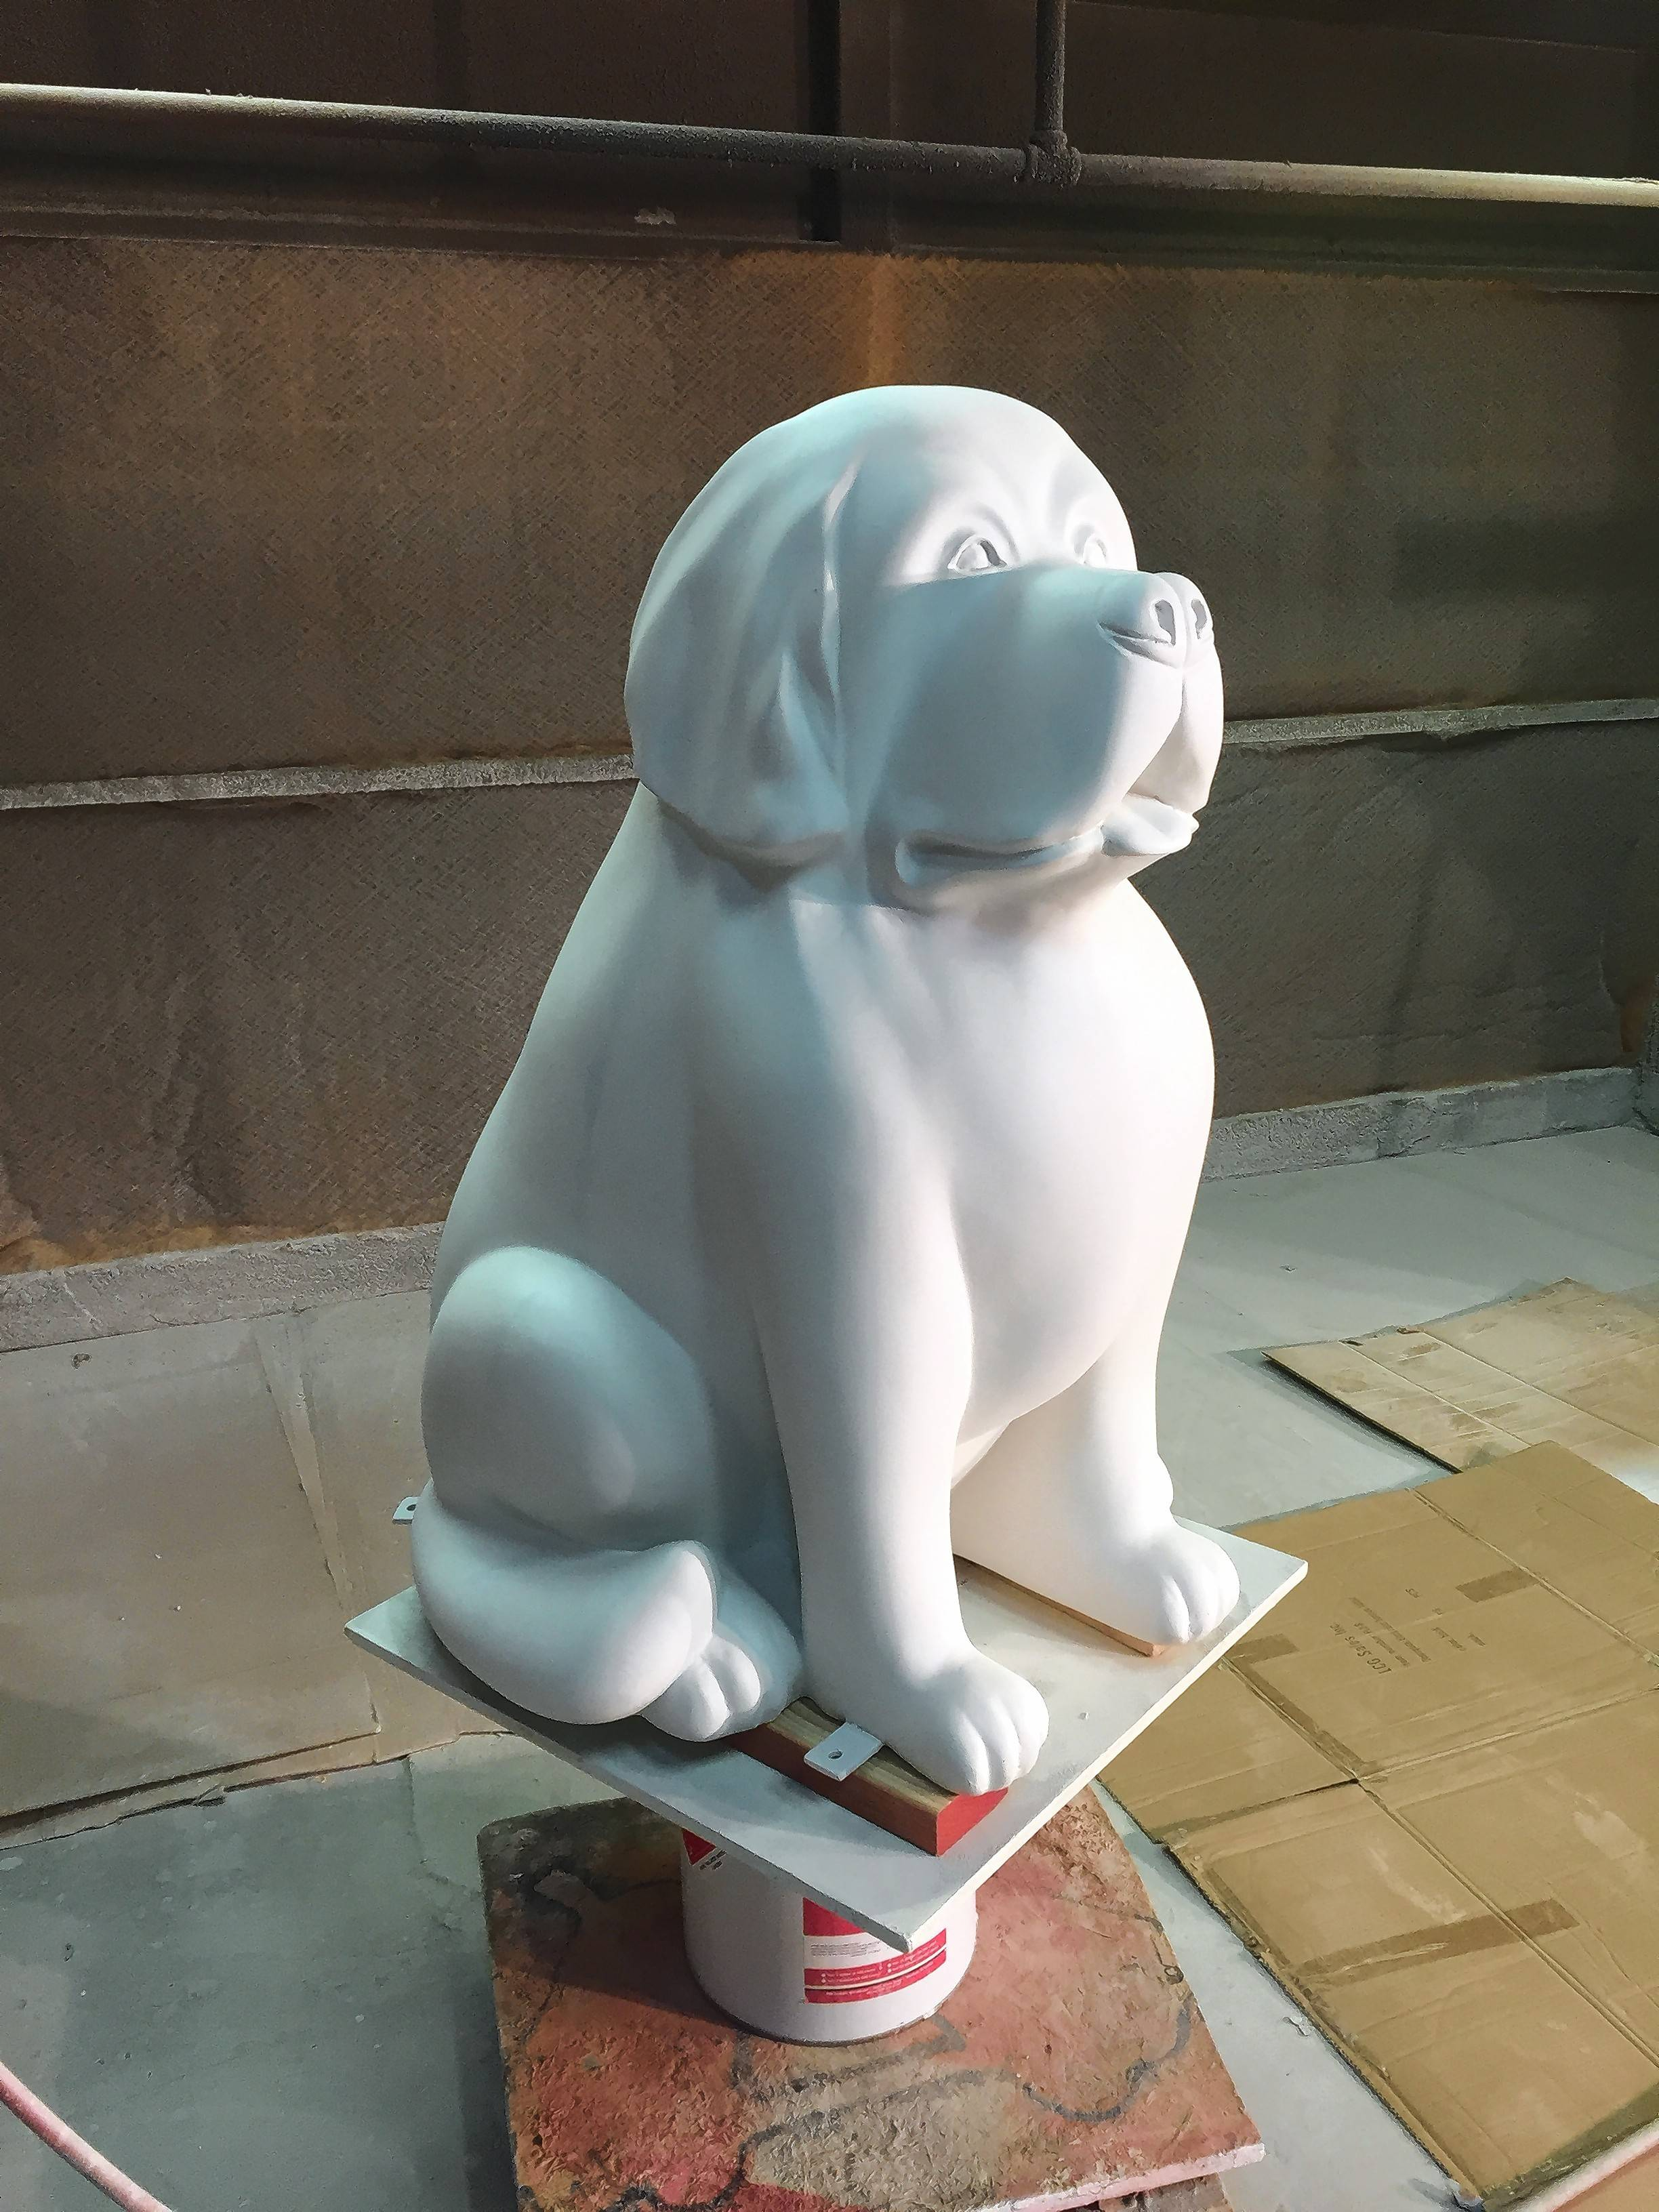 Dog sculptures to decorate downtown Naperville this summer